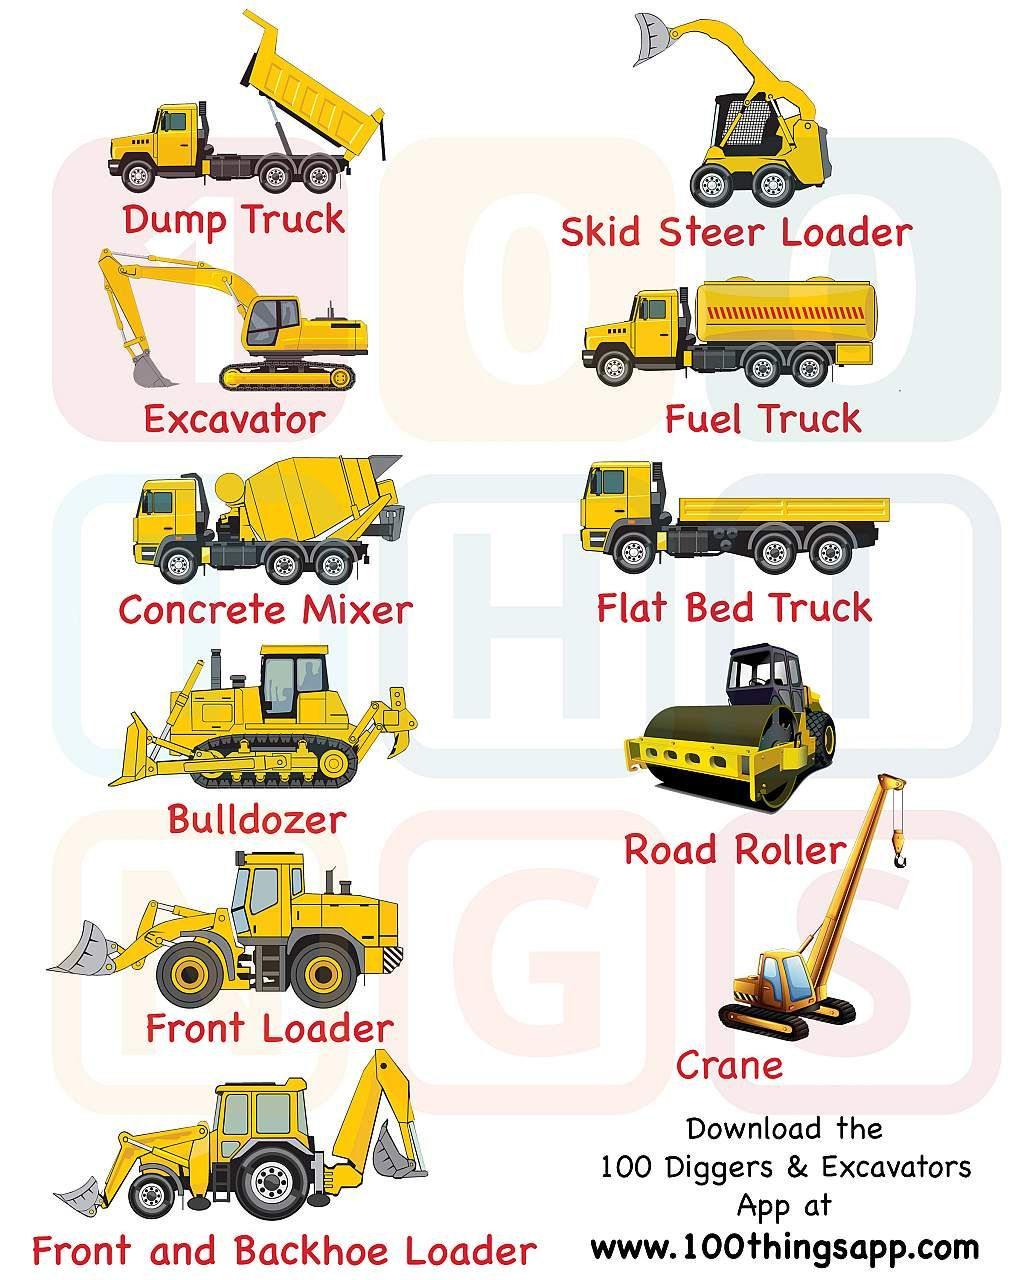 Legend And List Of The Types Of Construction Trucks